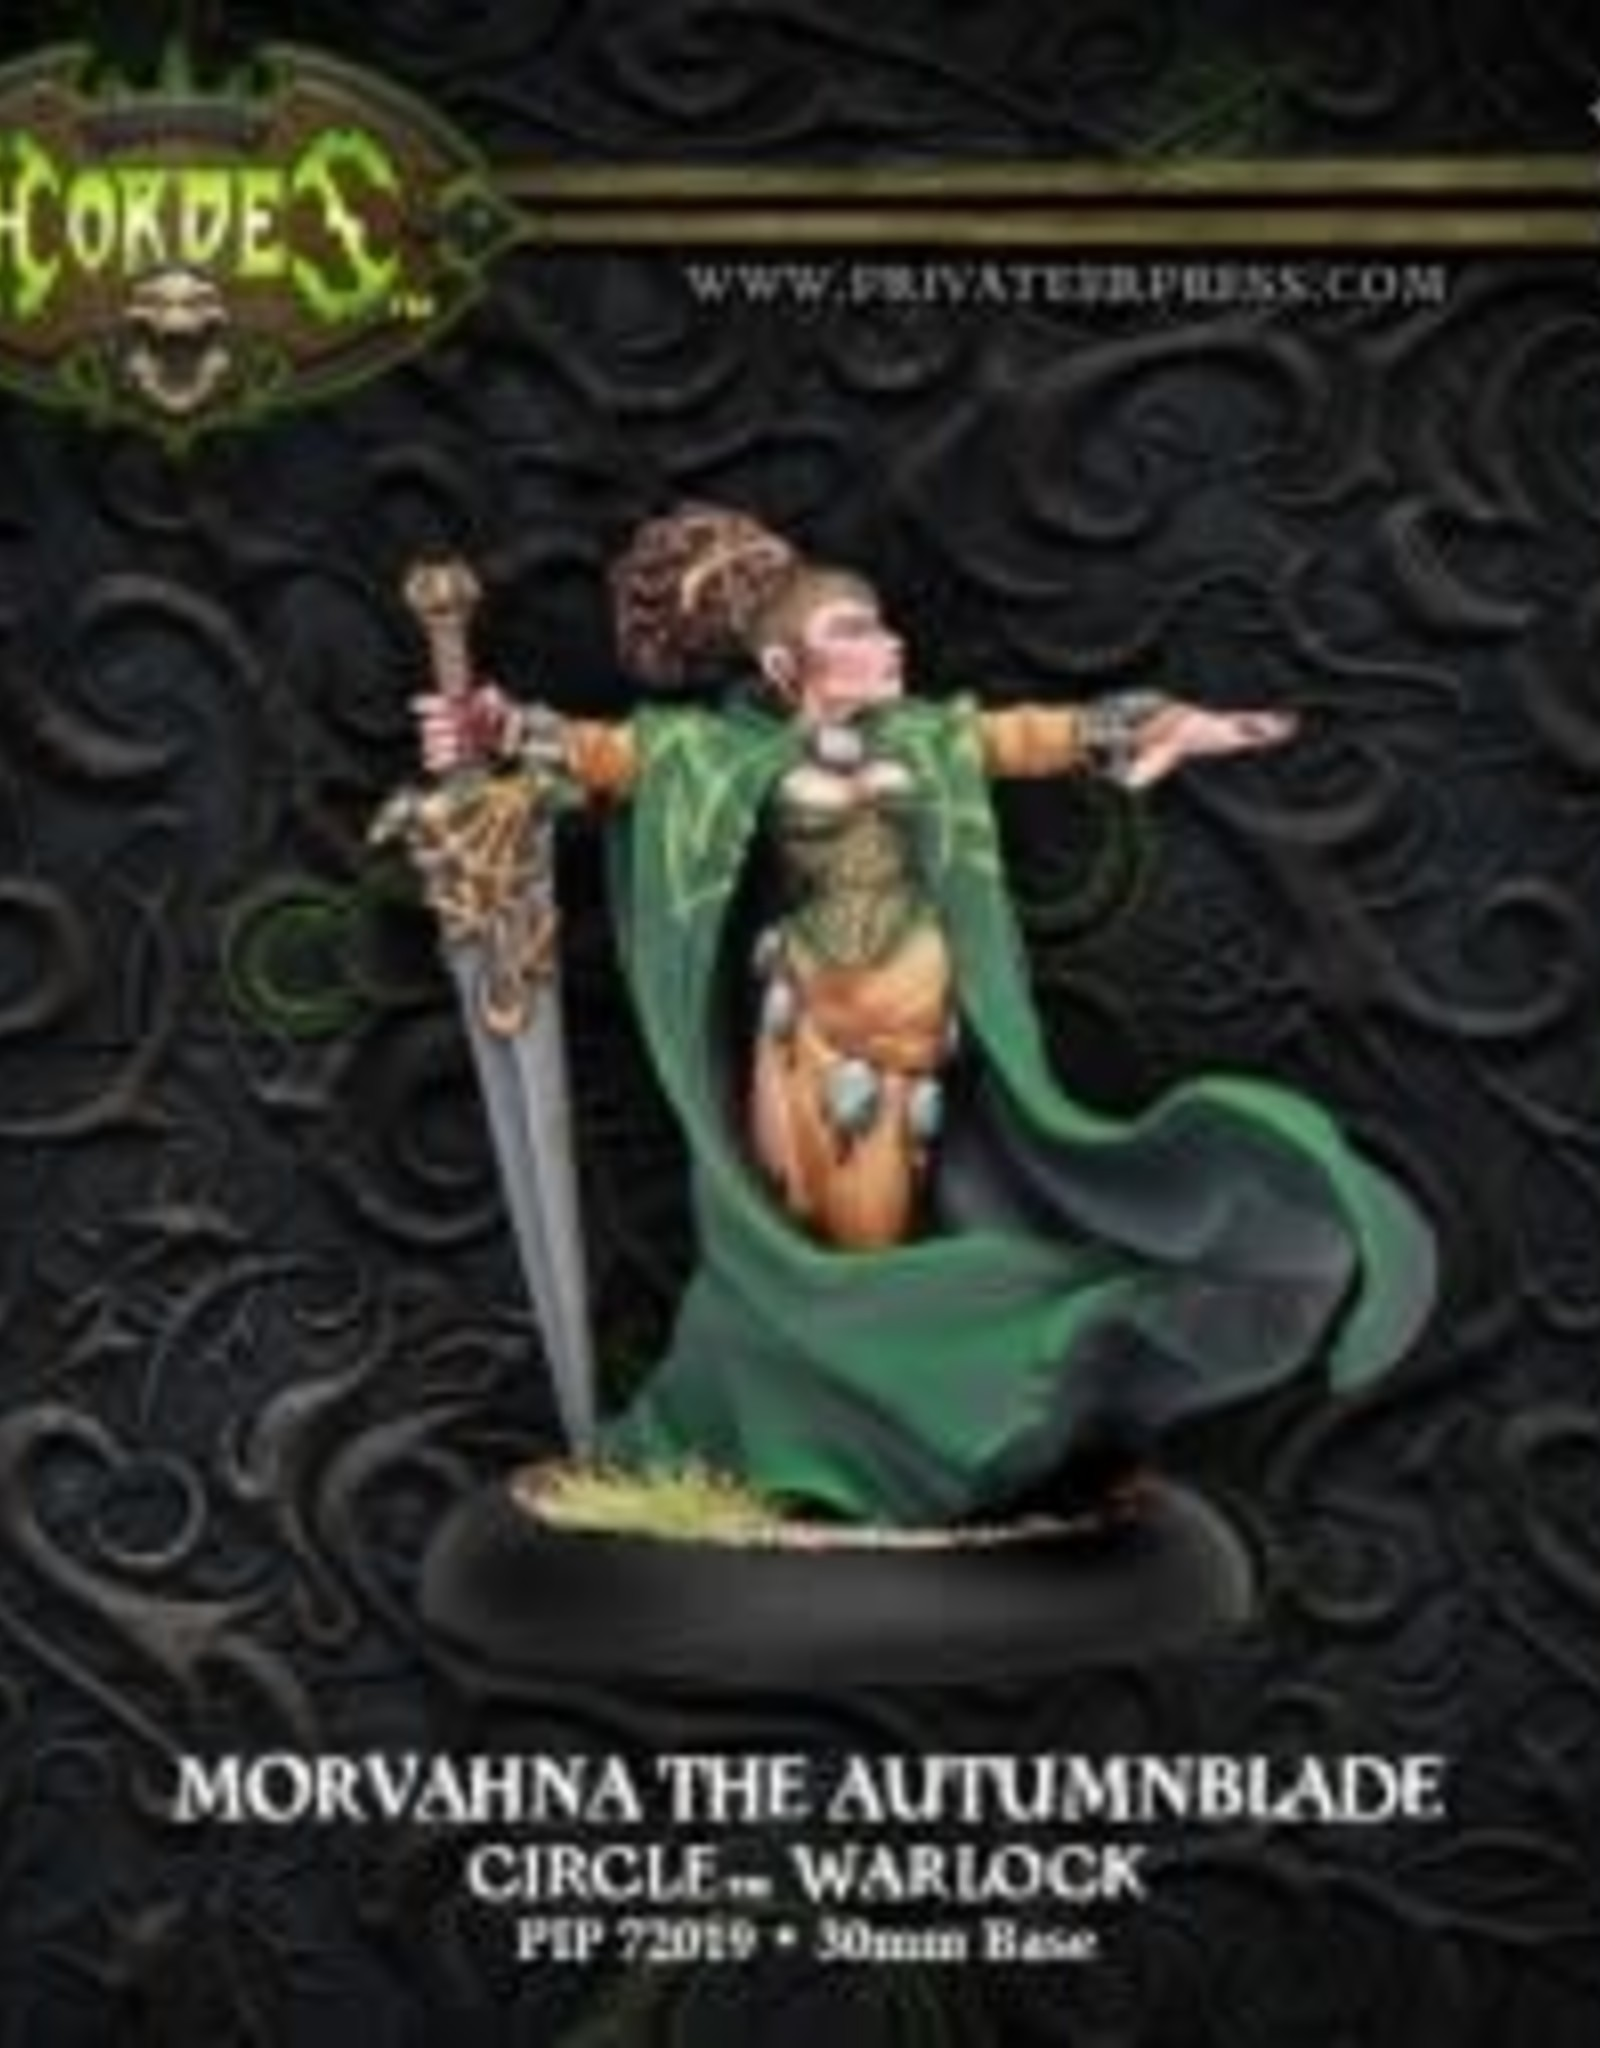 Hordes Circle - Morvahna the Autumnblade